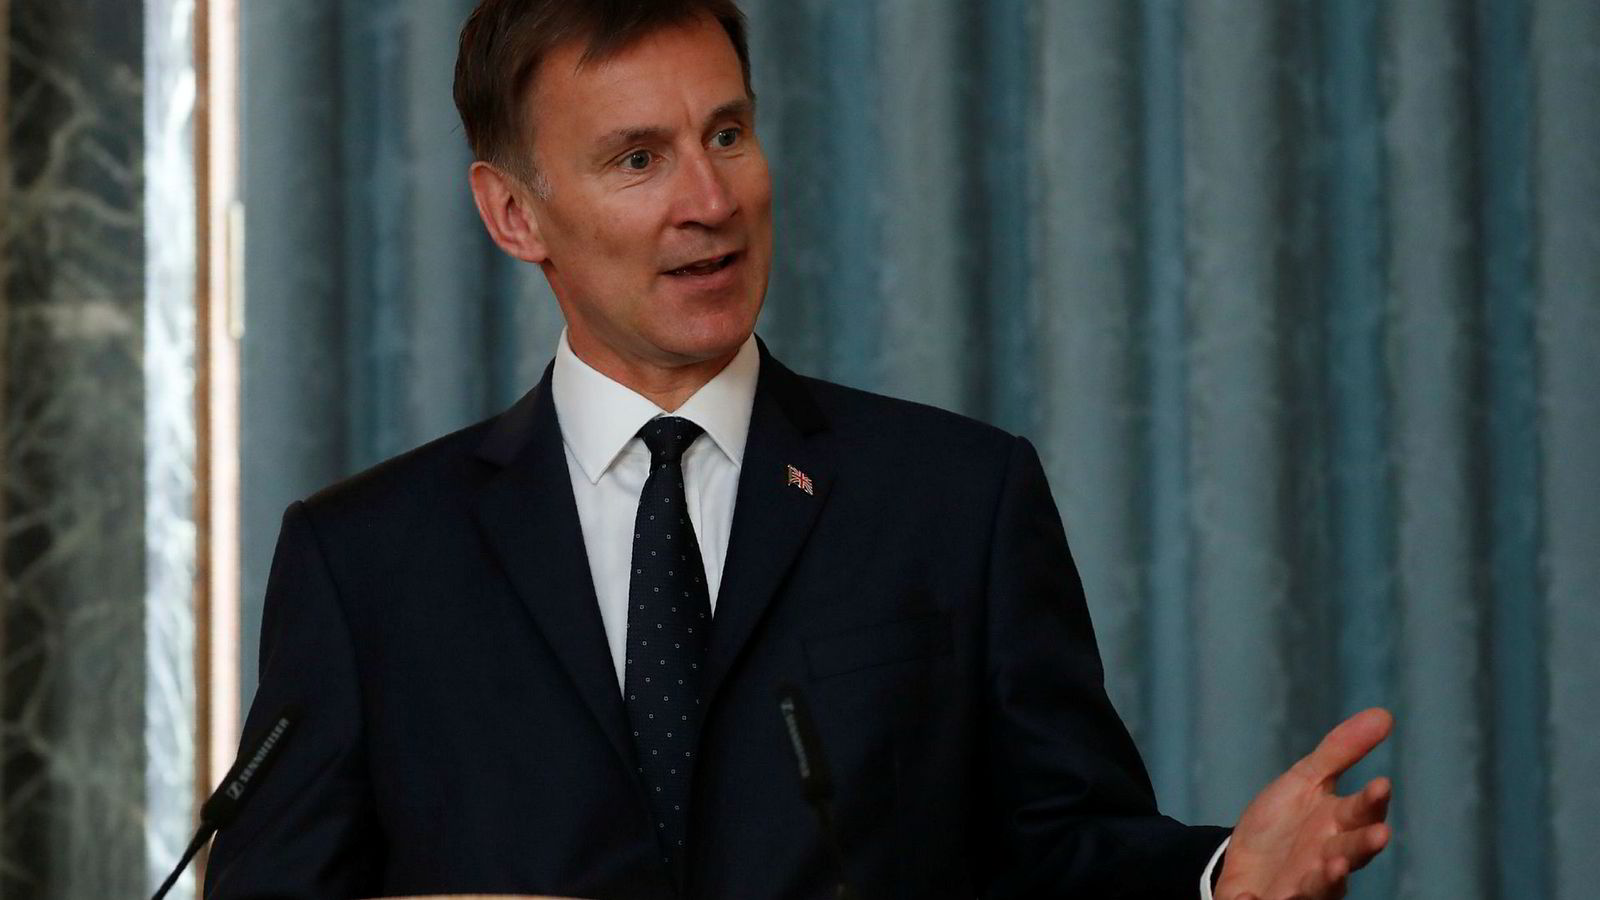 Britain's Foreign Secretary Jeremy Hunt, gestures as he answers a question during a press conference with the Bishop of Truro Philip Mounstephen about the Bishop's final report into the Foreign Office's support for Persecuted Christians around the world, in London, Monday, July 8, 2019. (AP Photo/Alastair Grant, pool)